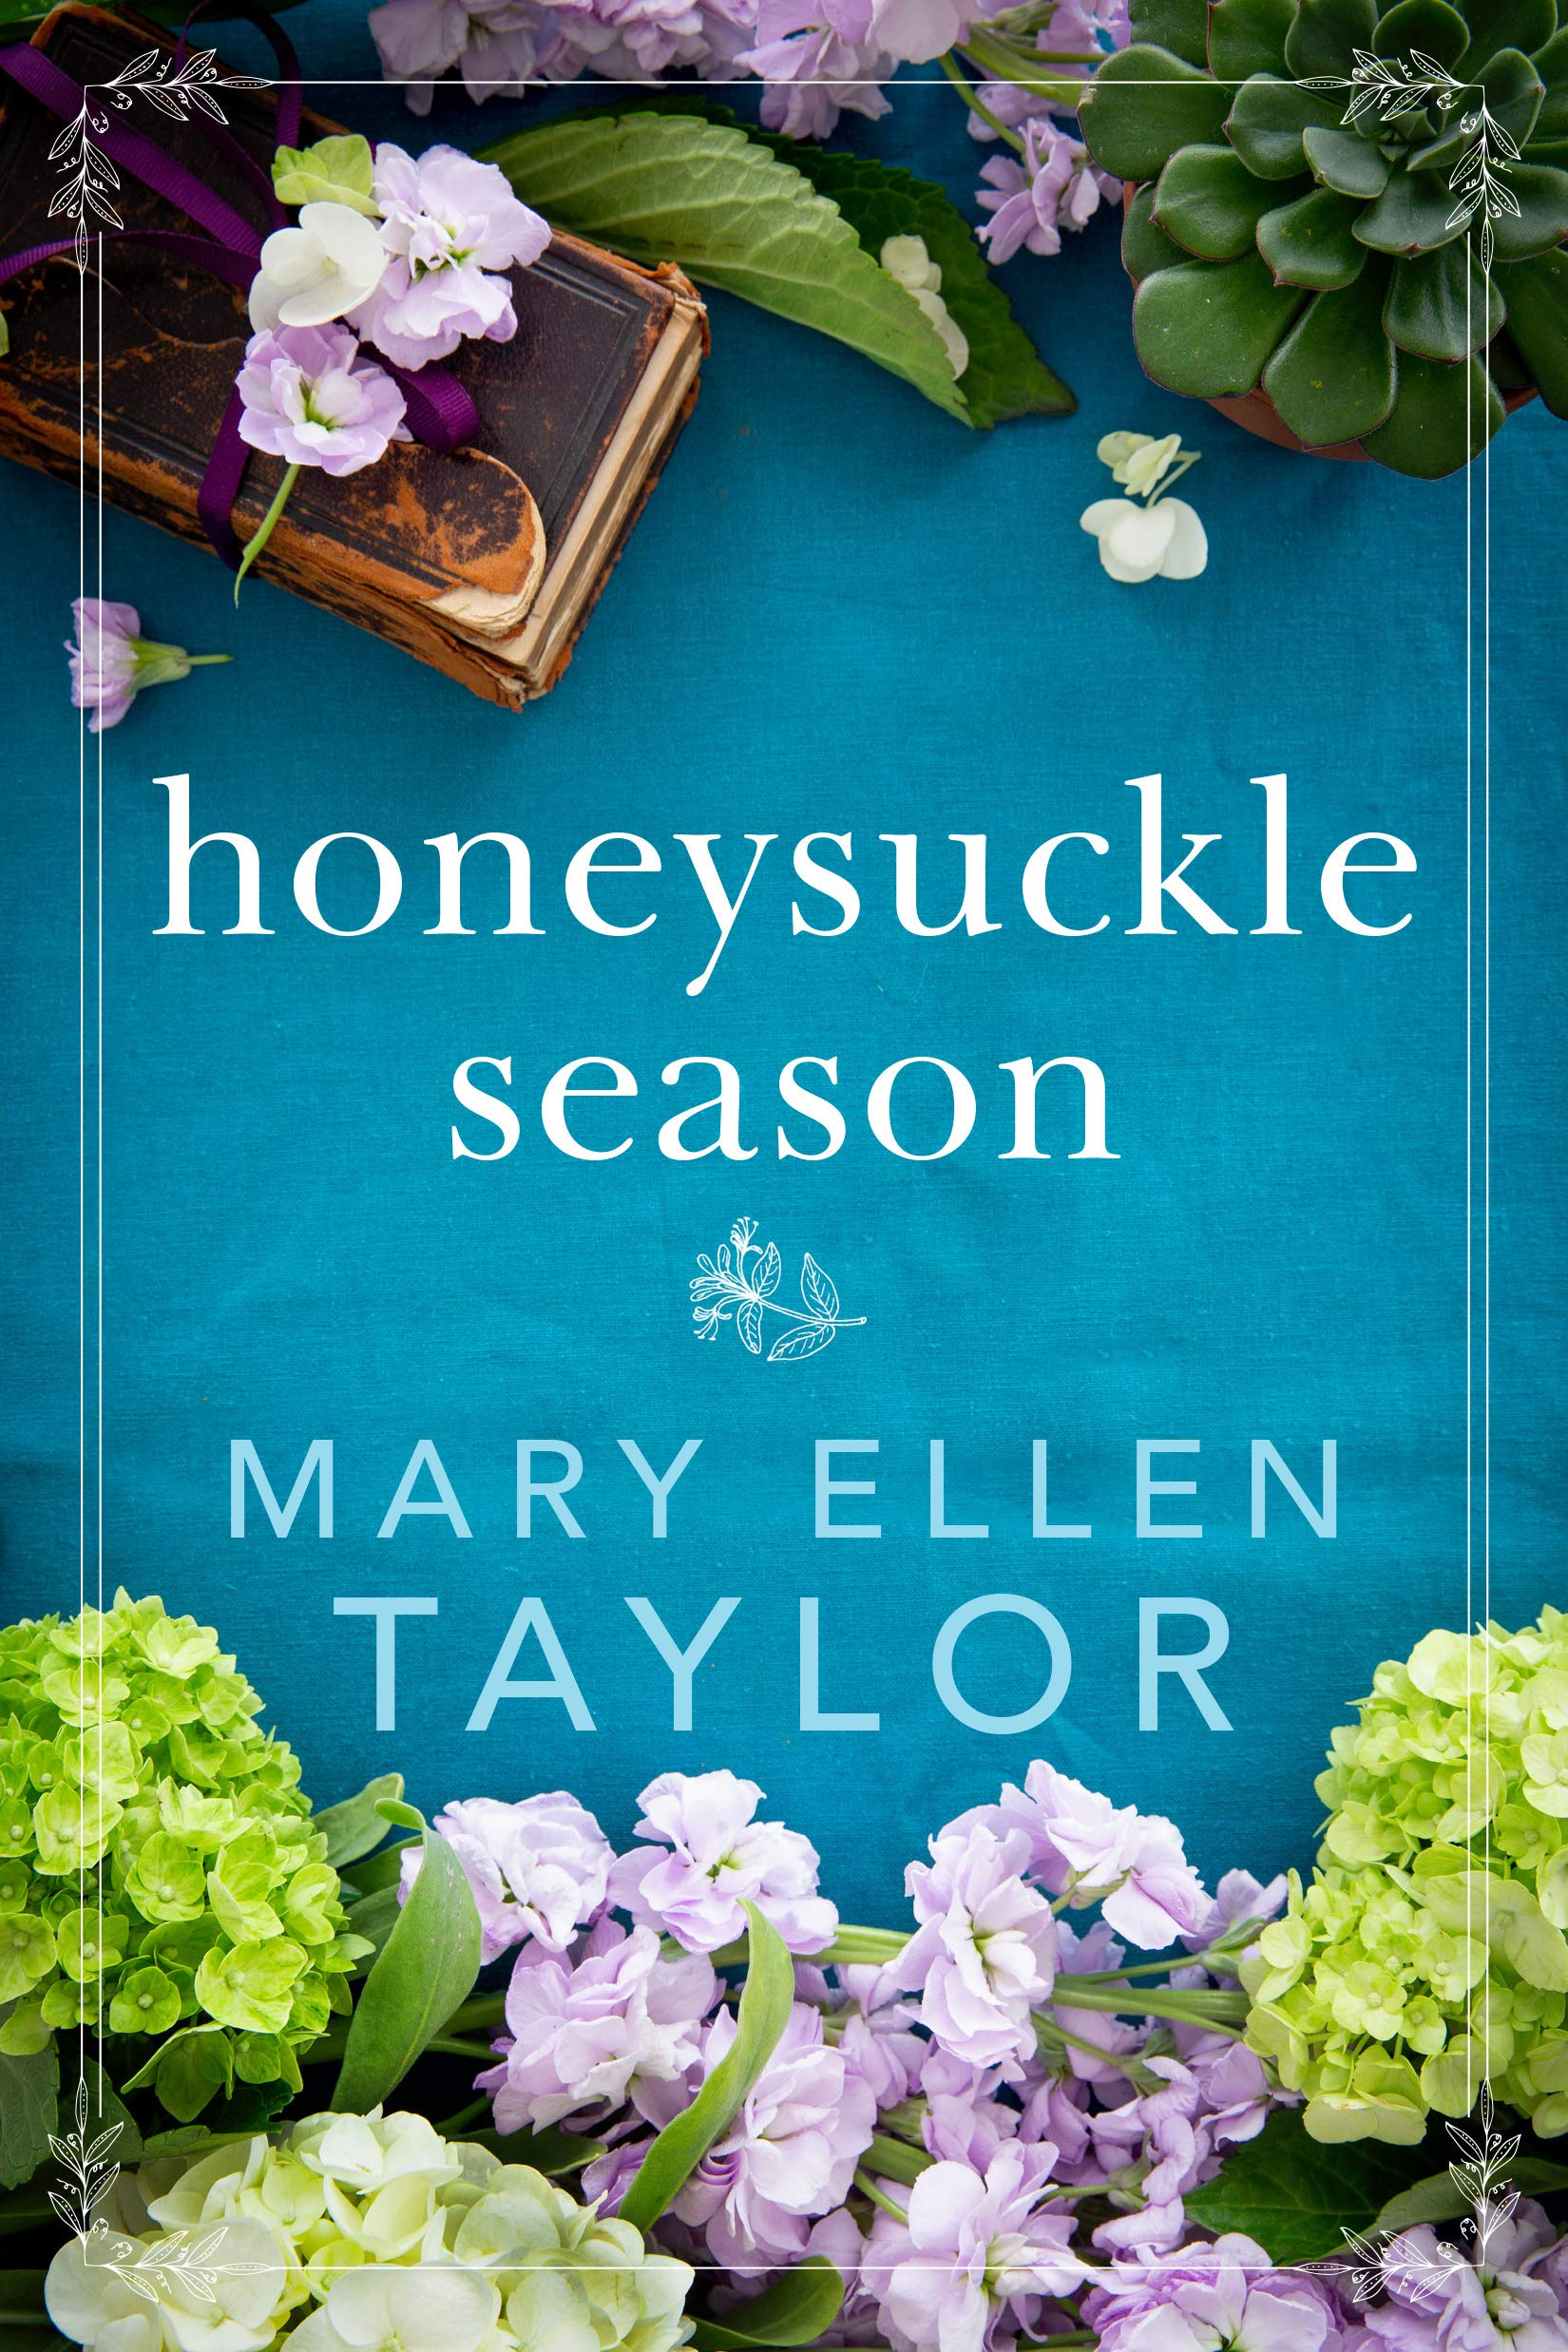 Cover image of Honeysuckle Season by Mary Ellen Taylor